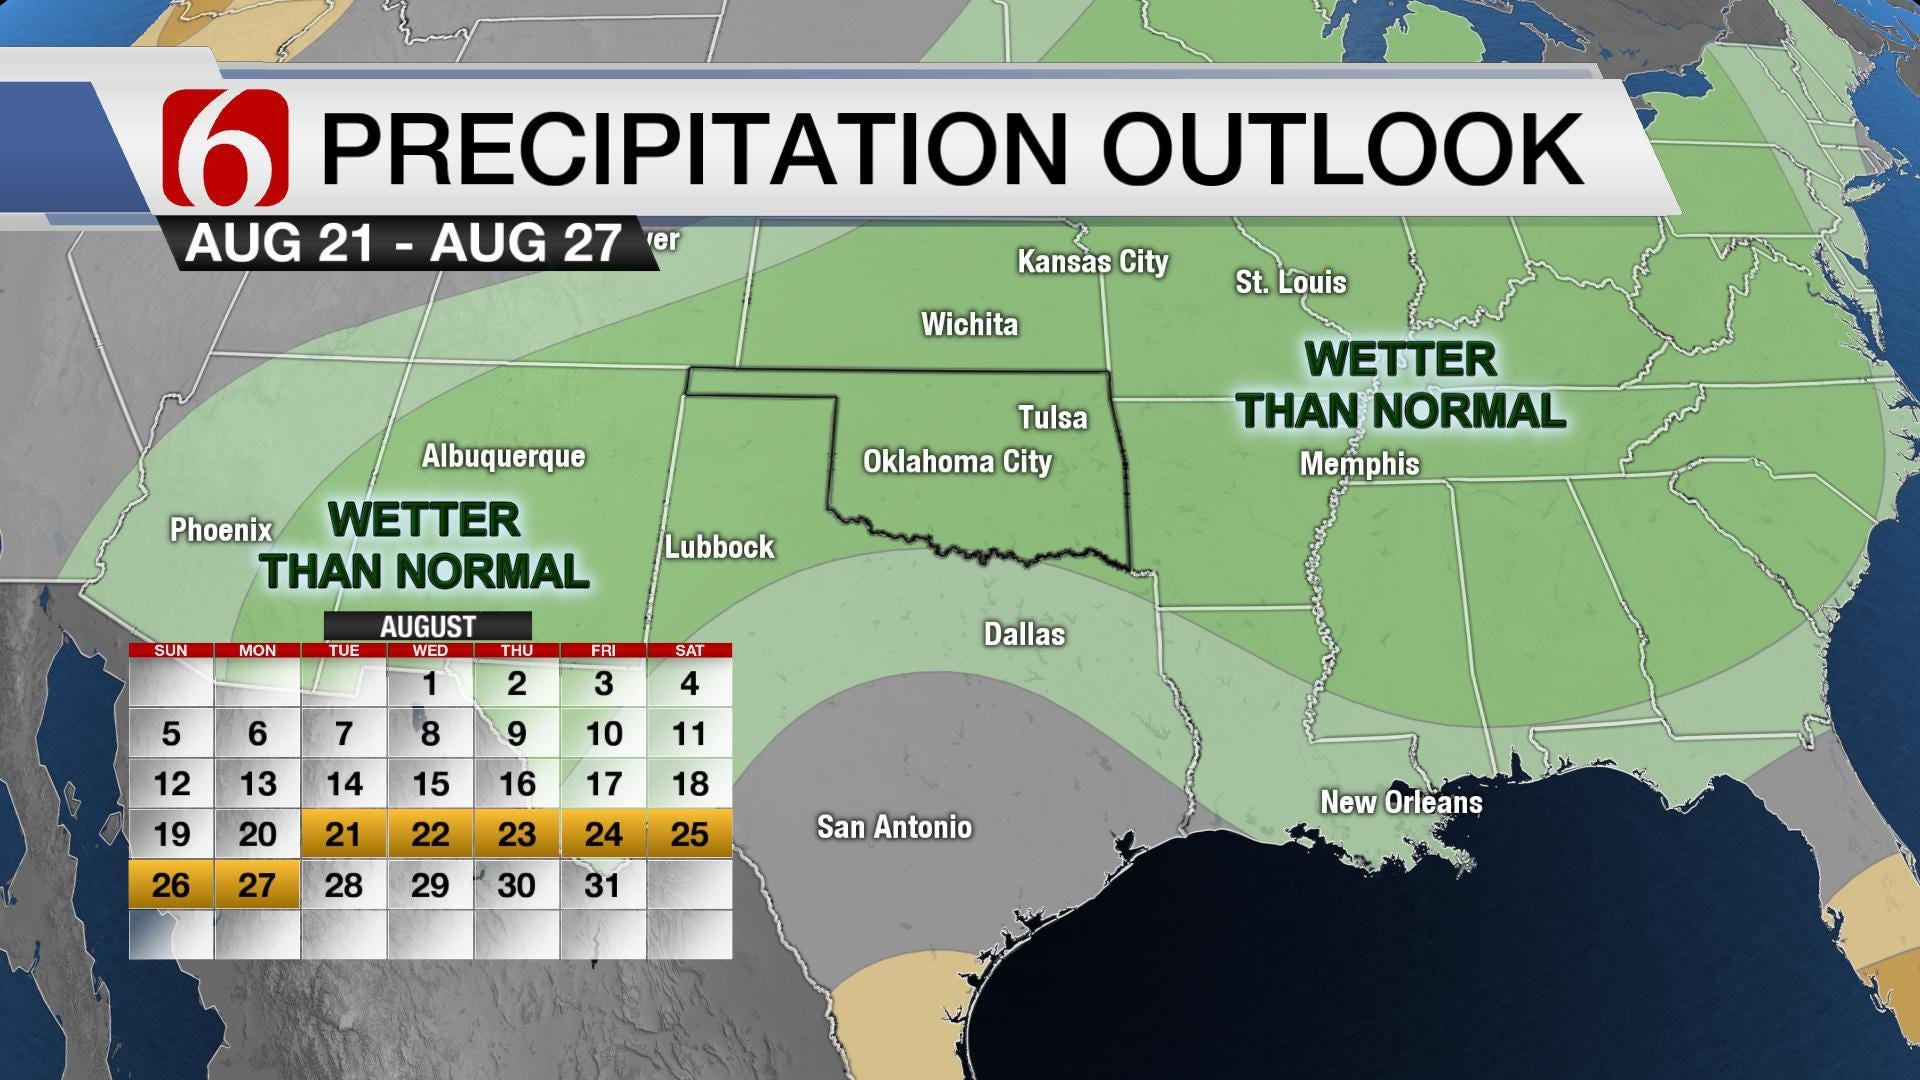 August Wet Spell Could Lead to Flooding